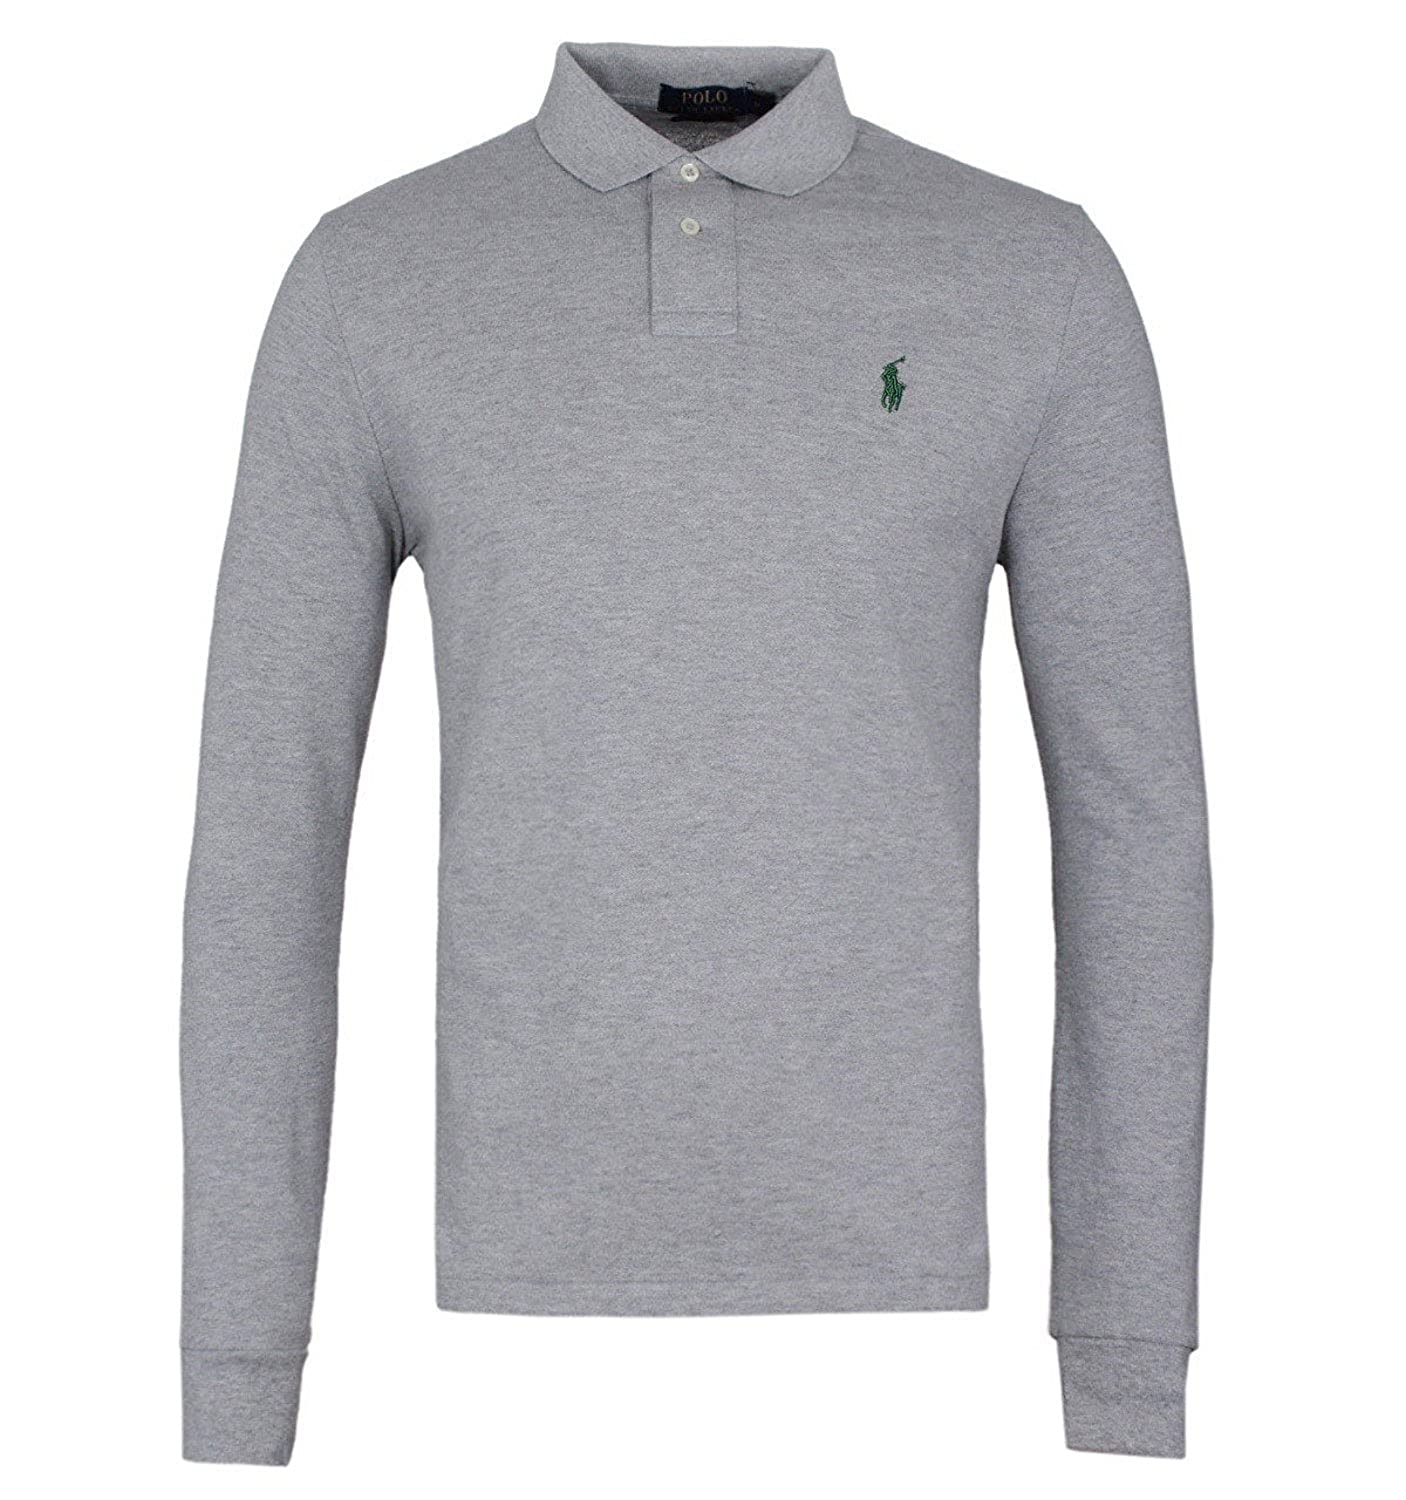 93bf93db0026 Ralph Lauren Long Sleeve Polo Top in Classic Fit (M